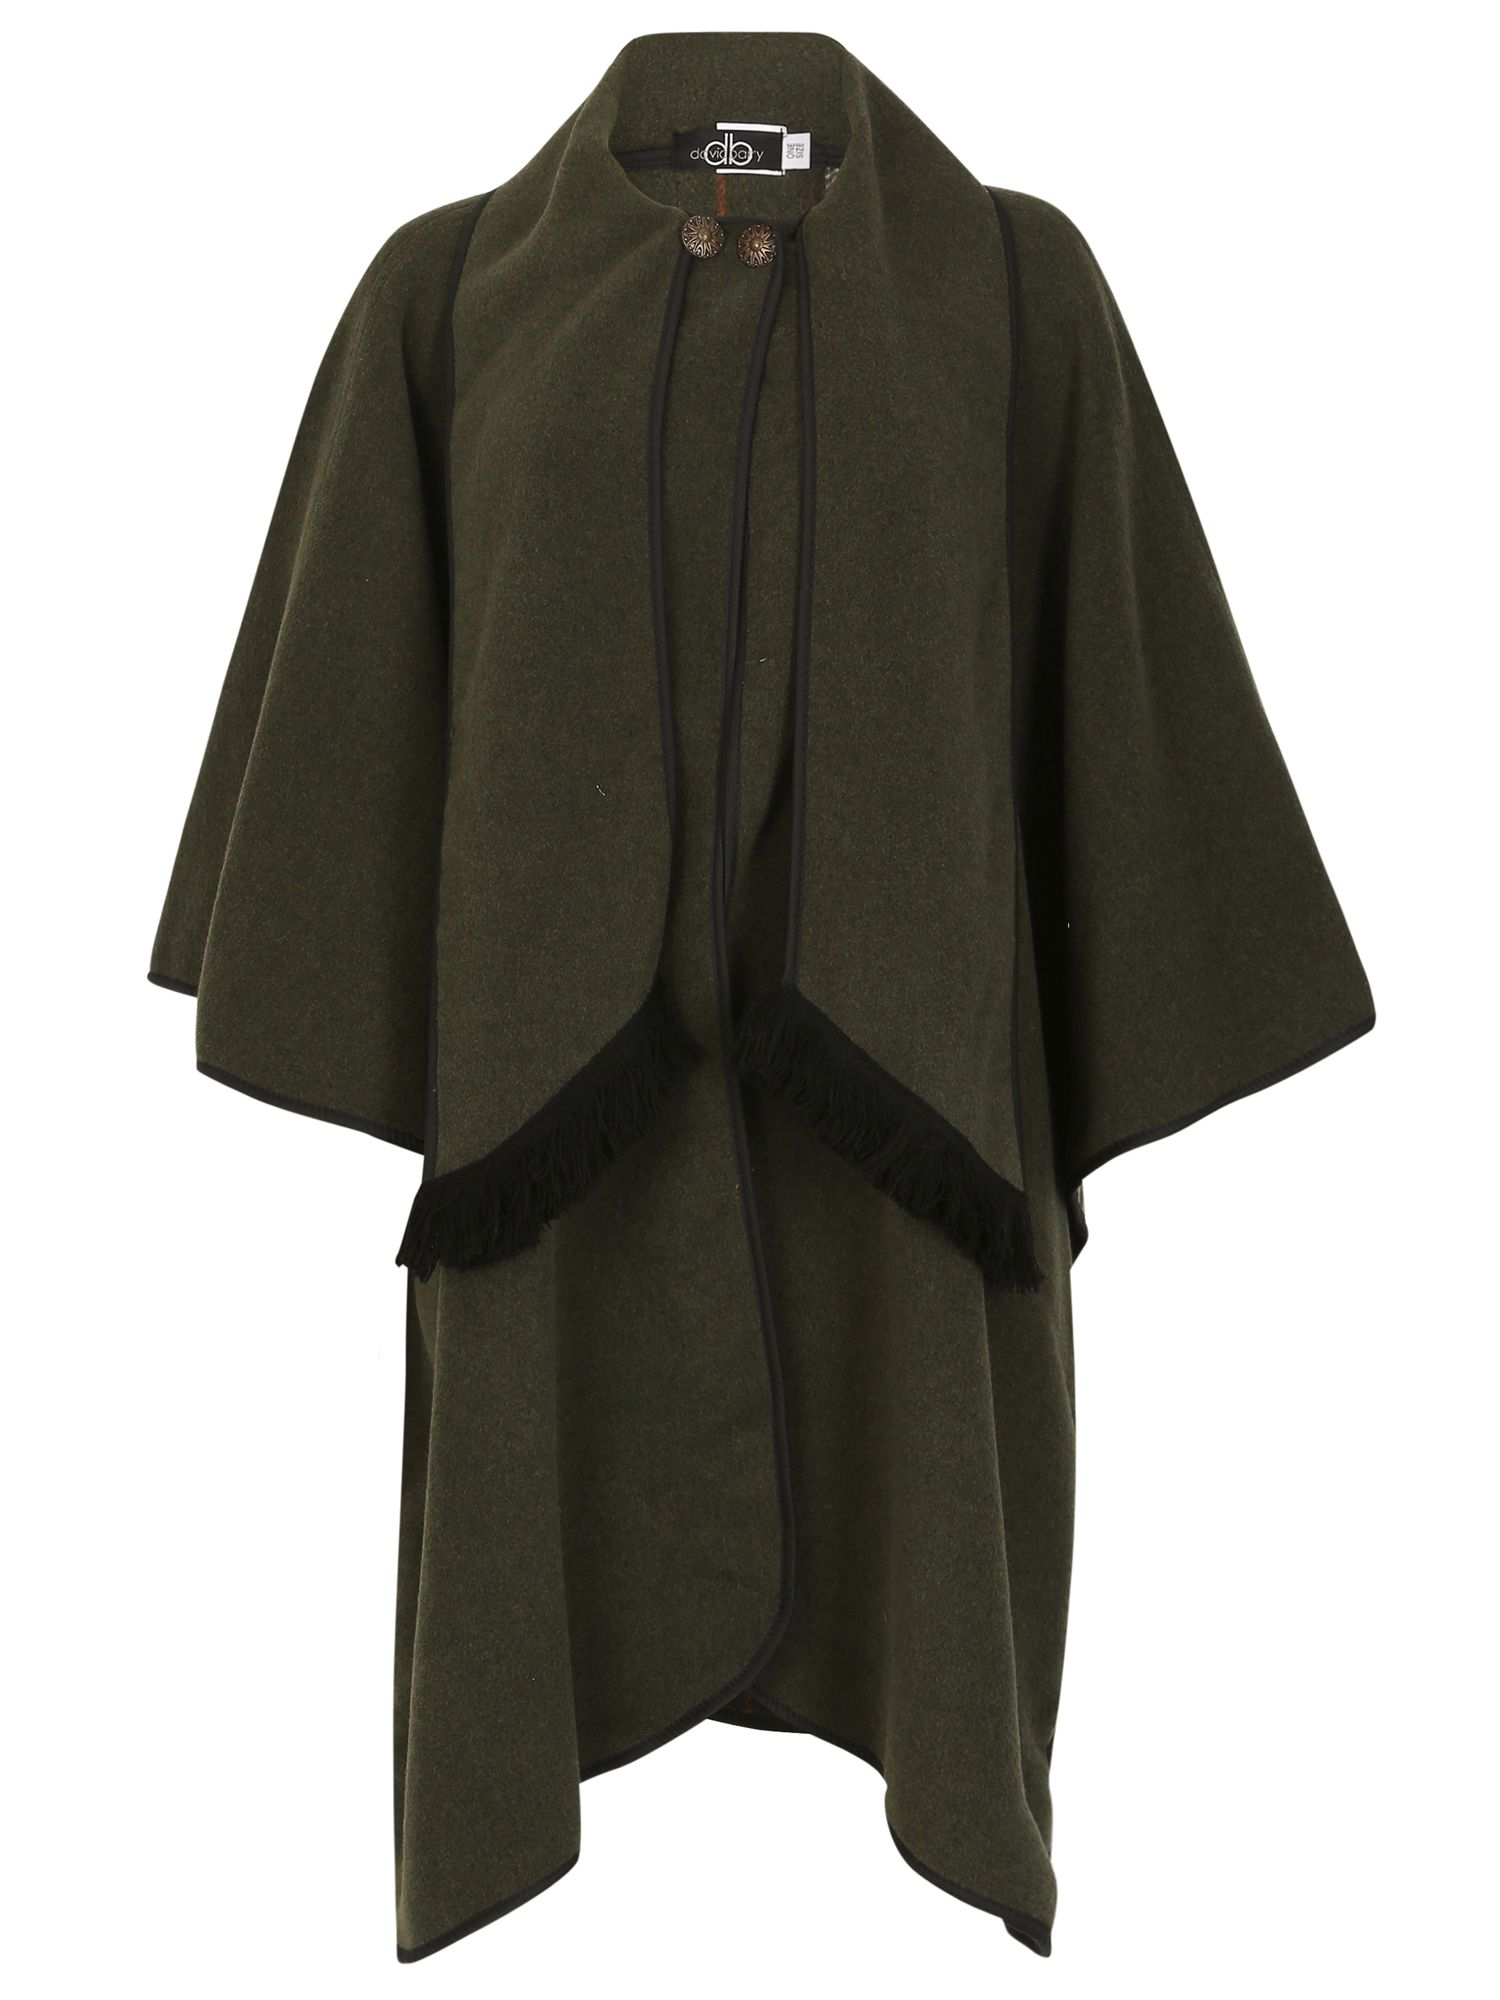 David Barry Wool Mix Cape Fully Reversible, Green